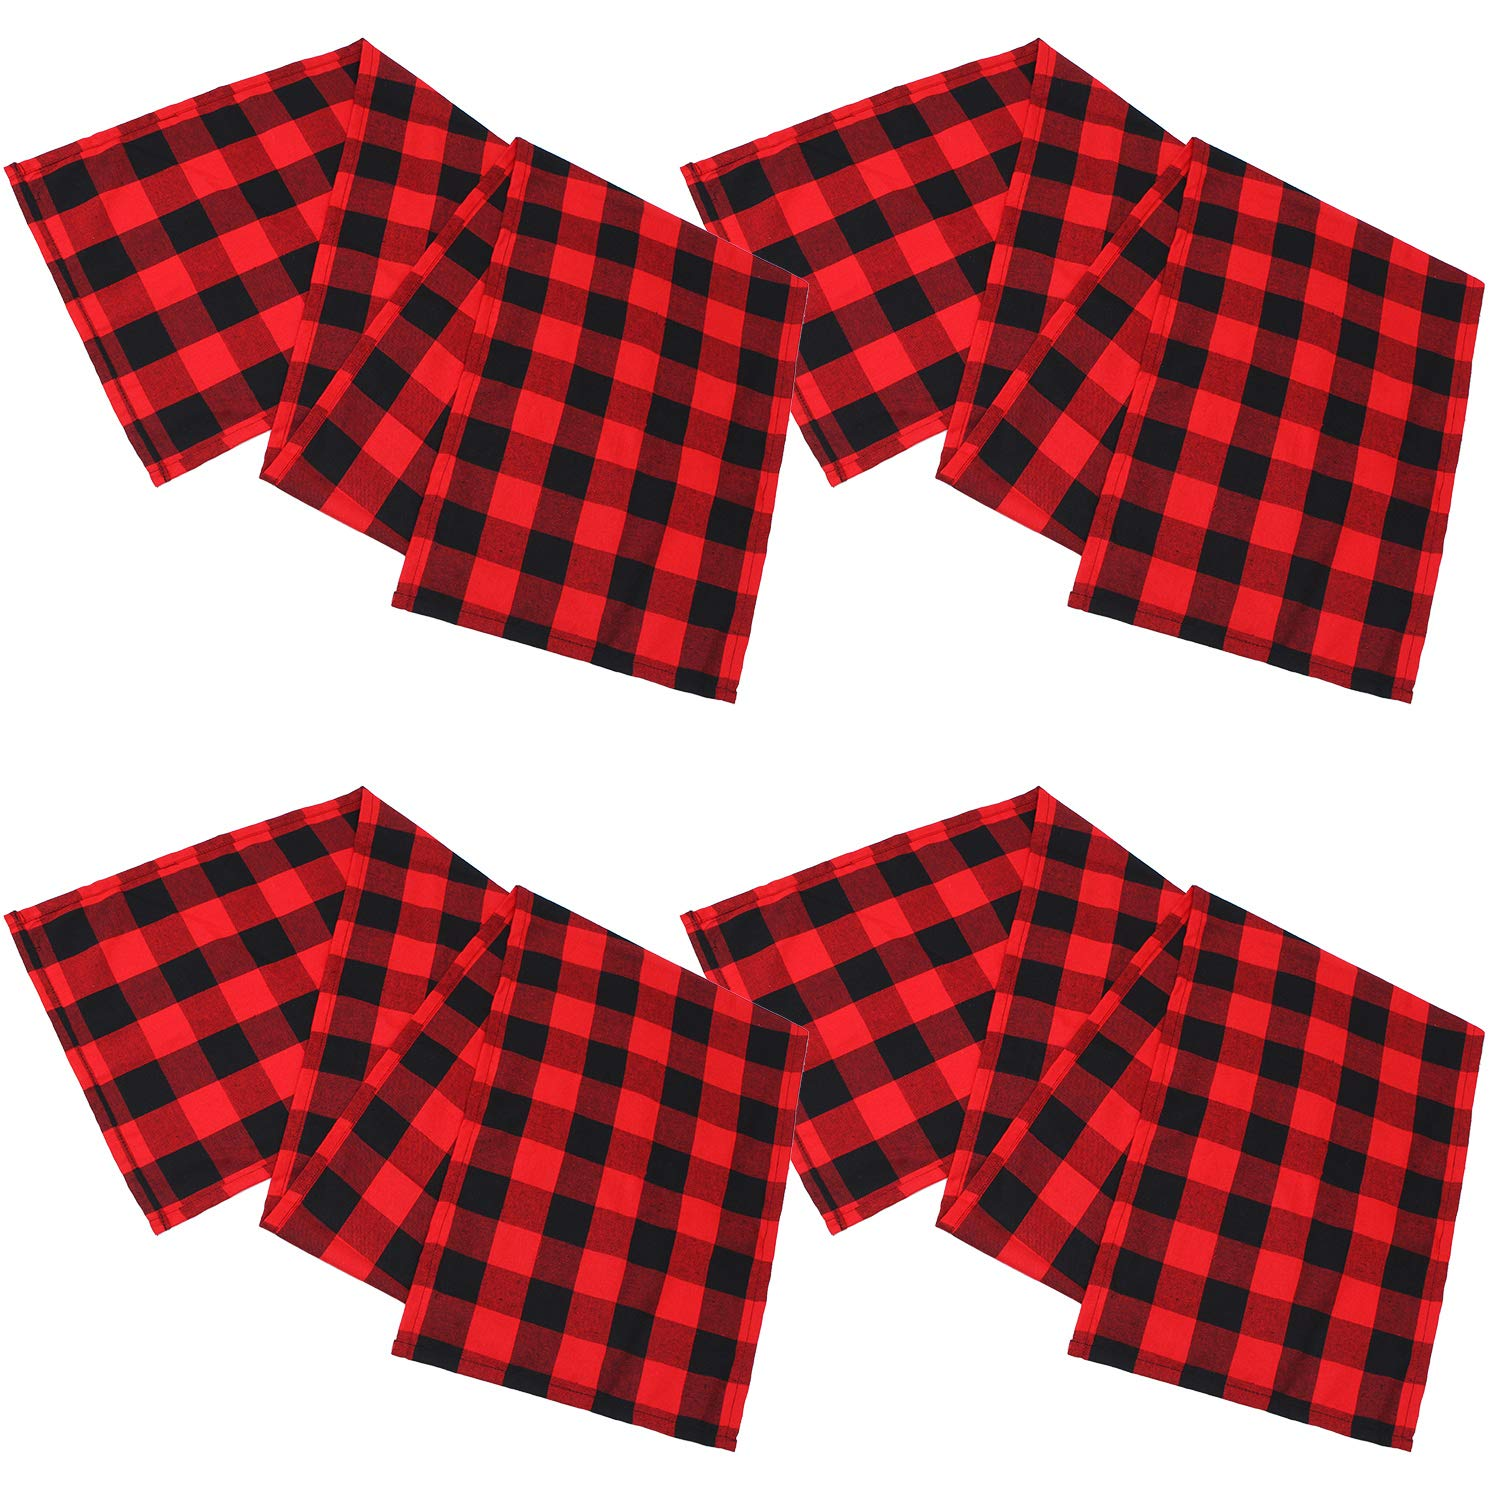 4-Pack-Checkered-Table-Runner-Cotton-Plaid-Table-Runner-Modern-Plaid-Design-U2L6 thumbnail 5